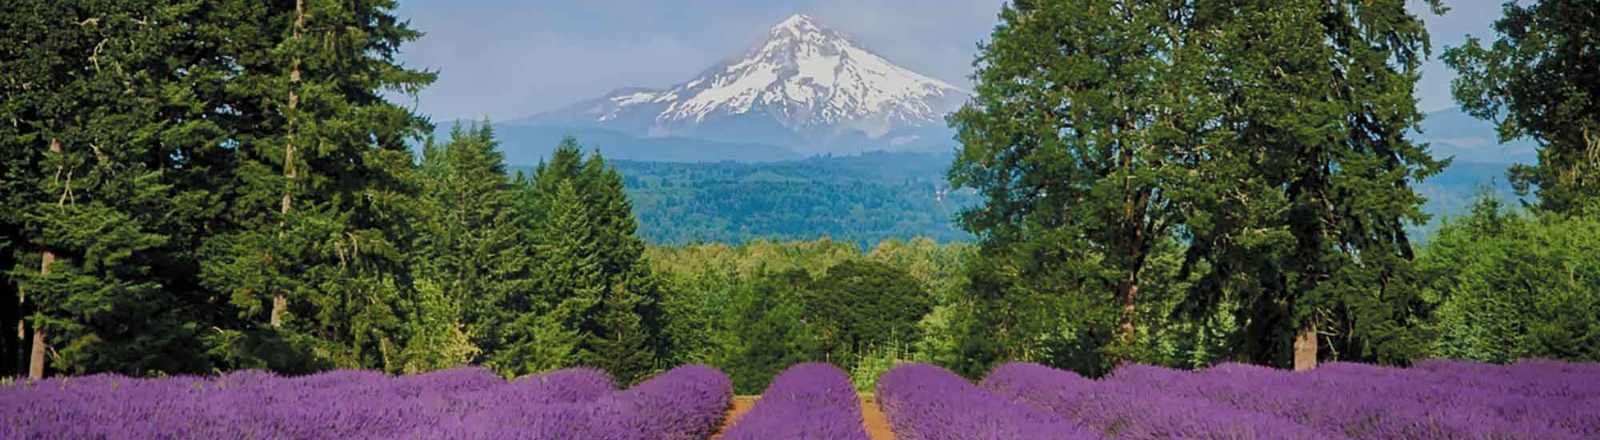 rows of lavender with Mt. Hood Oregon Lavender Festival